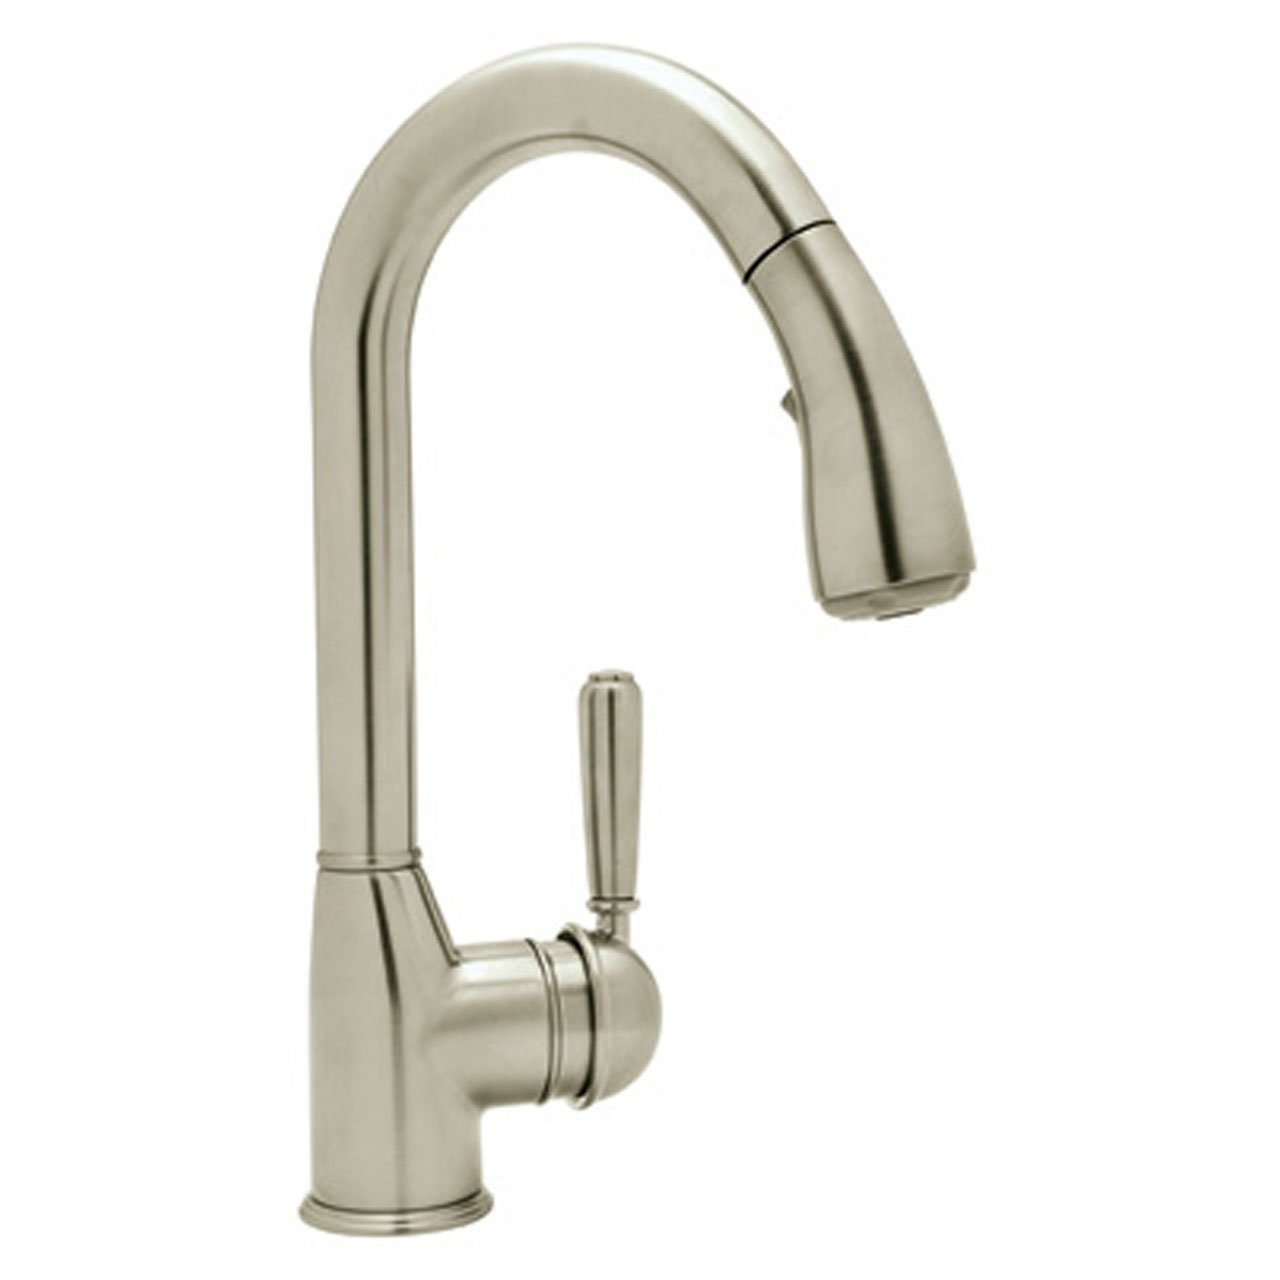 Rohl Kitchen Faucets Reviews Rohl R7504lmstn 2 Classic Kitchen Faucet With Pull Down Spray